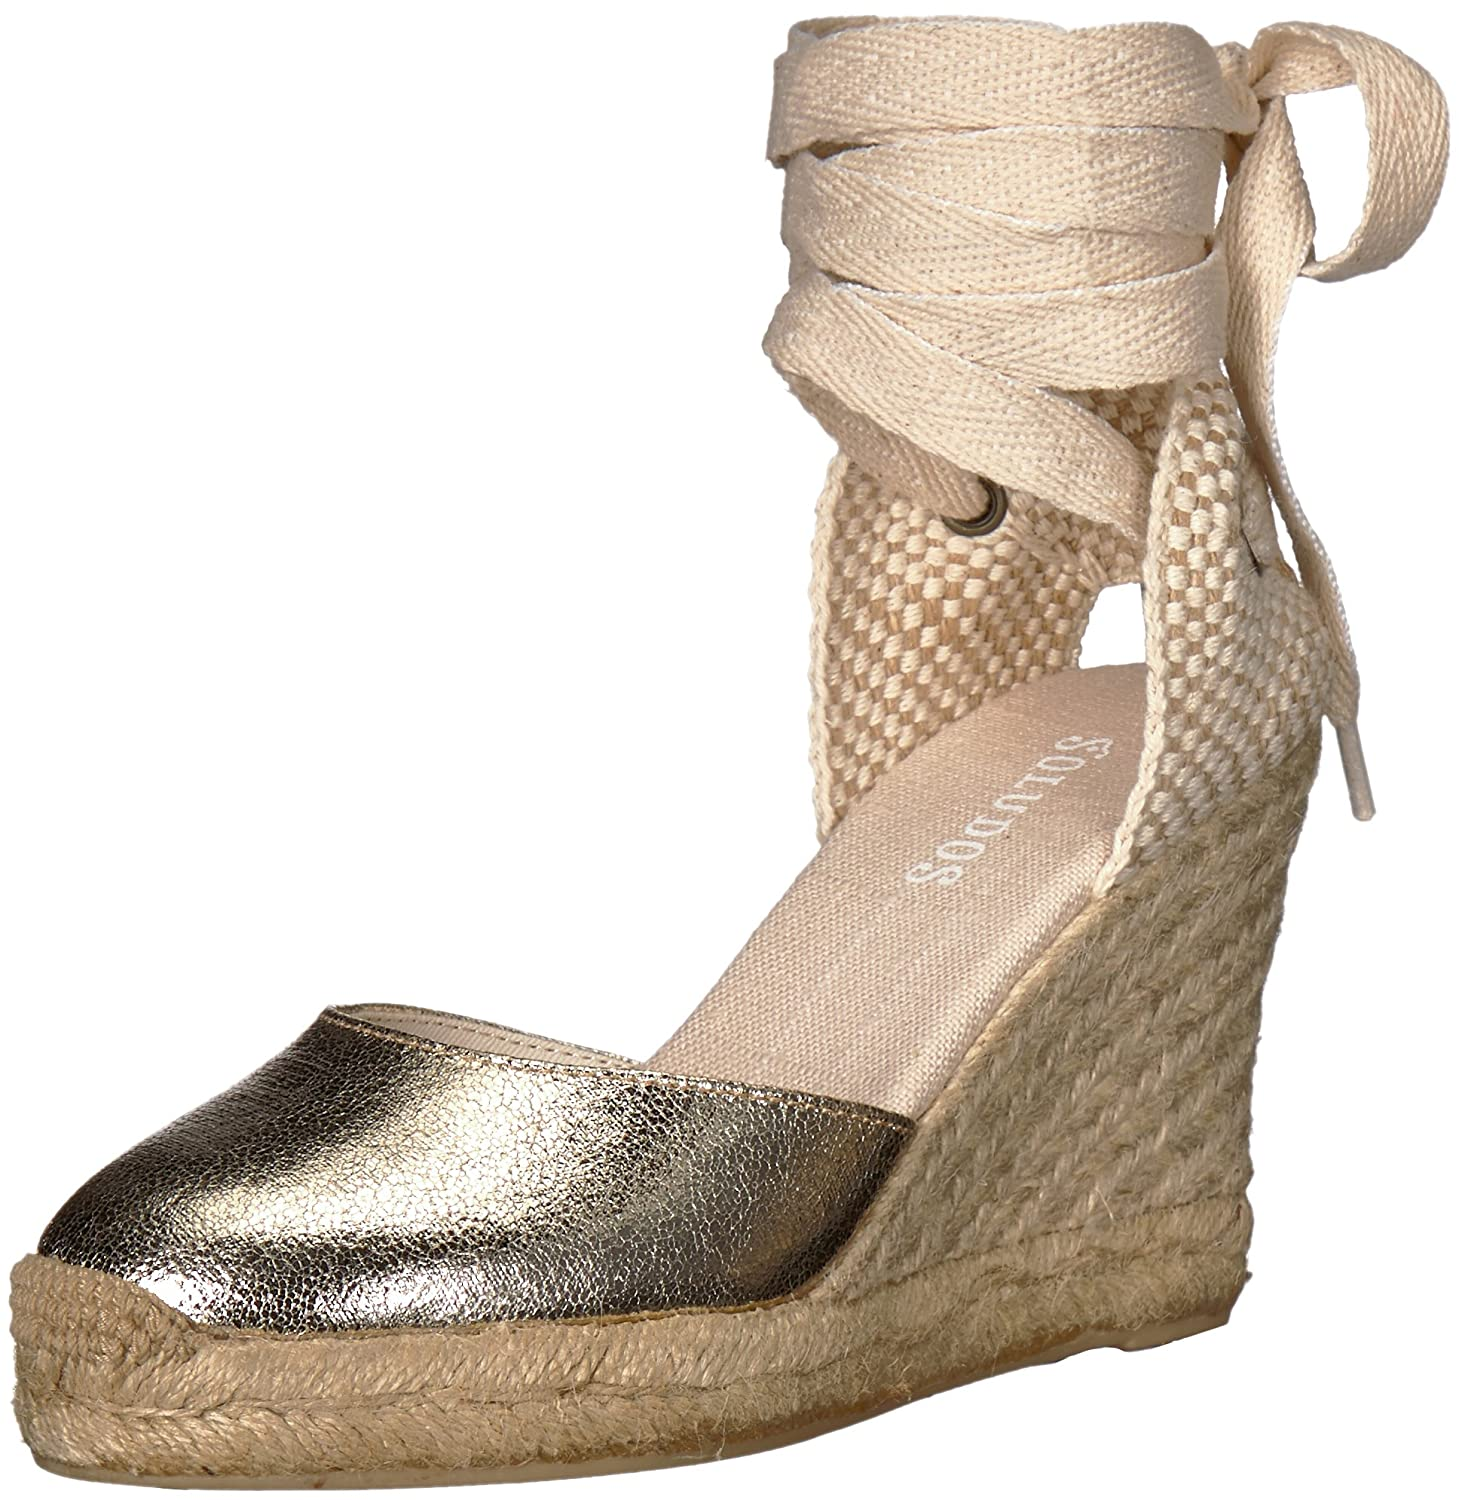 Soludos Women's Metallic Tall Wedge Pump B072N7XT8Z 8 B(M) US|Pale Gold